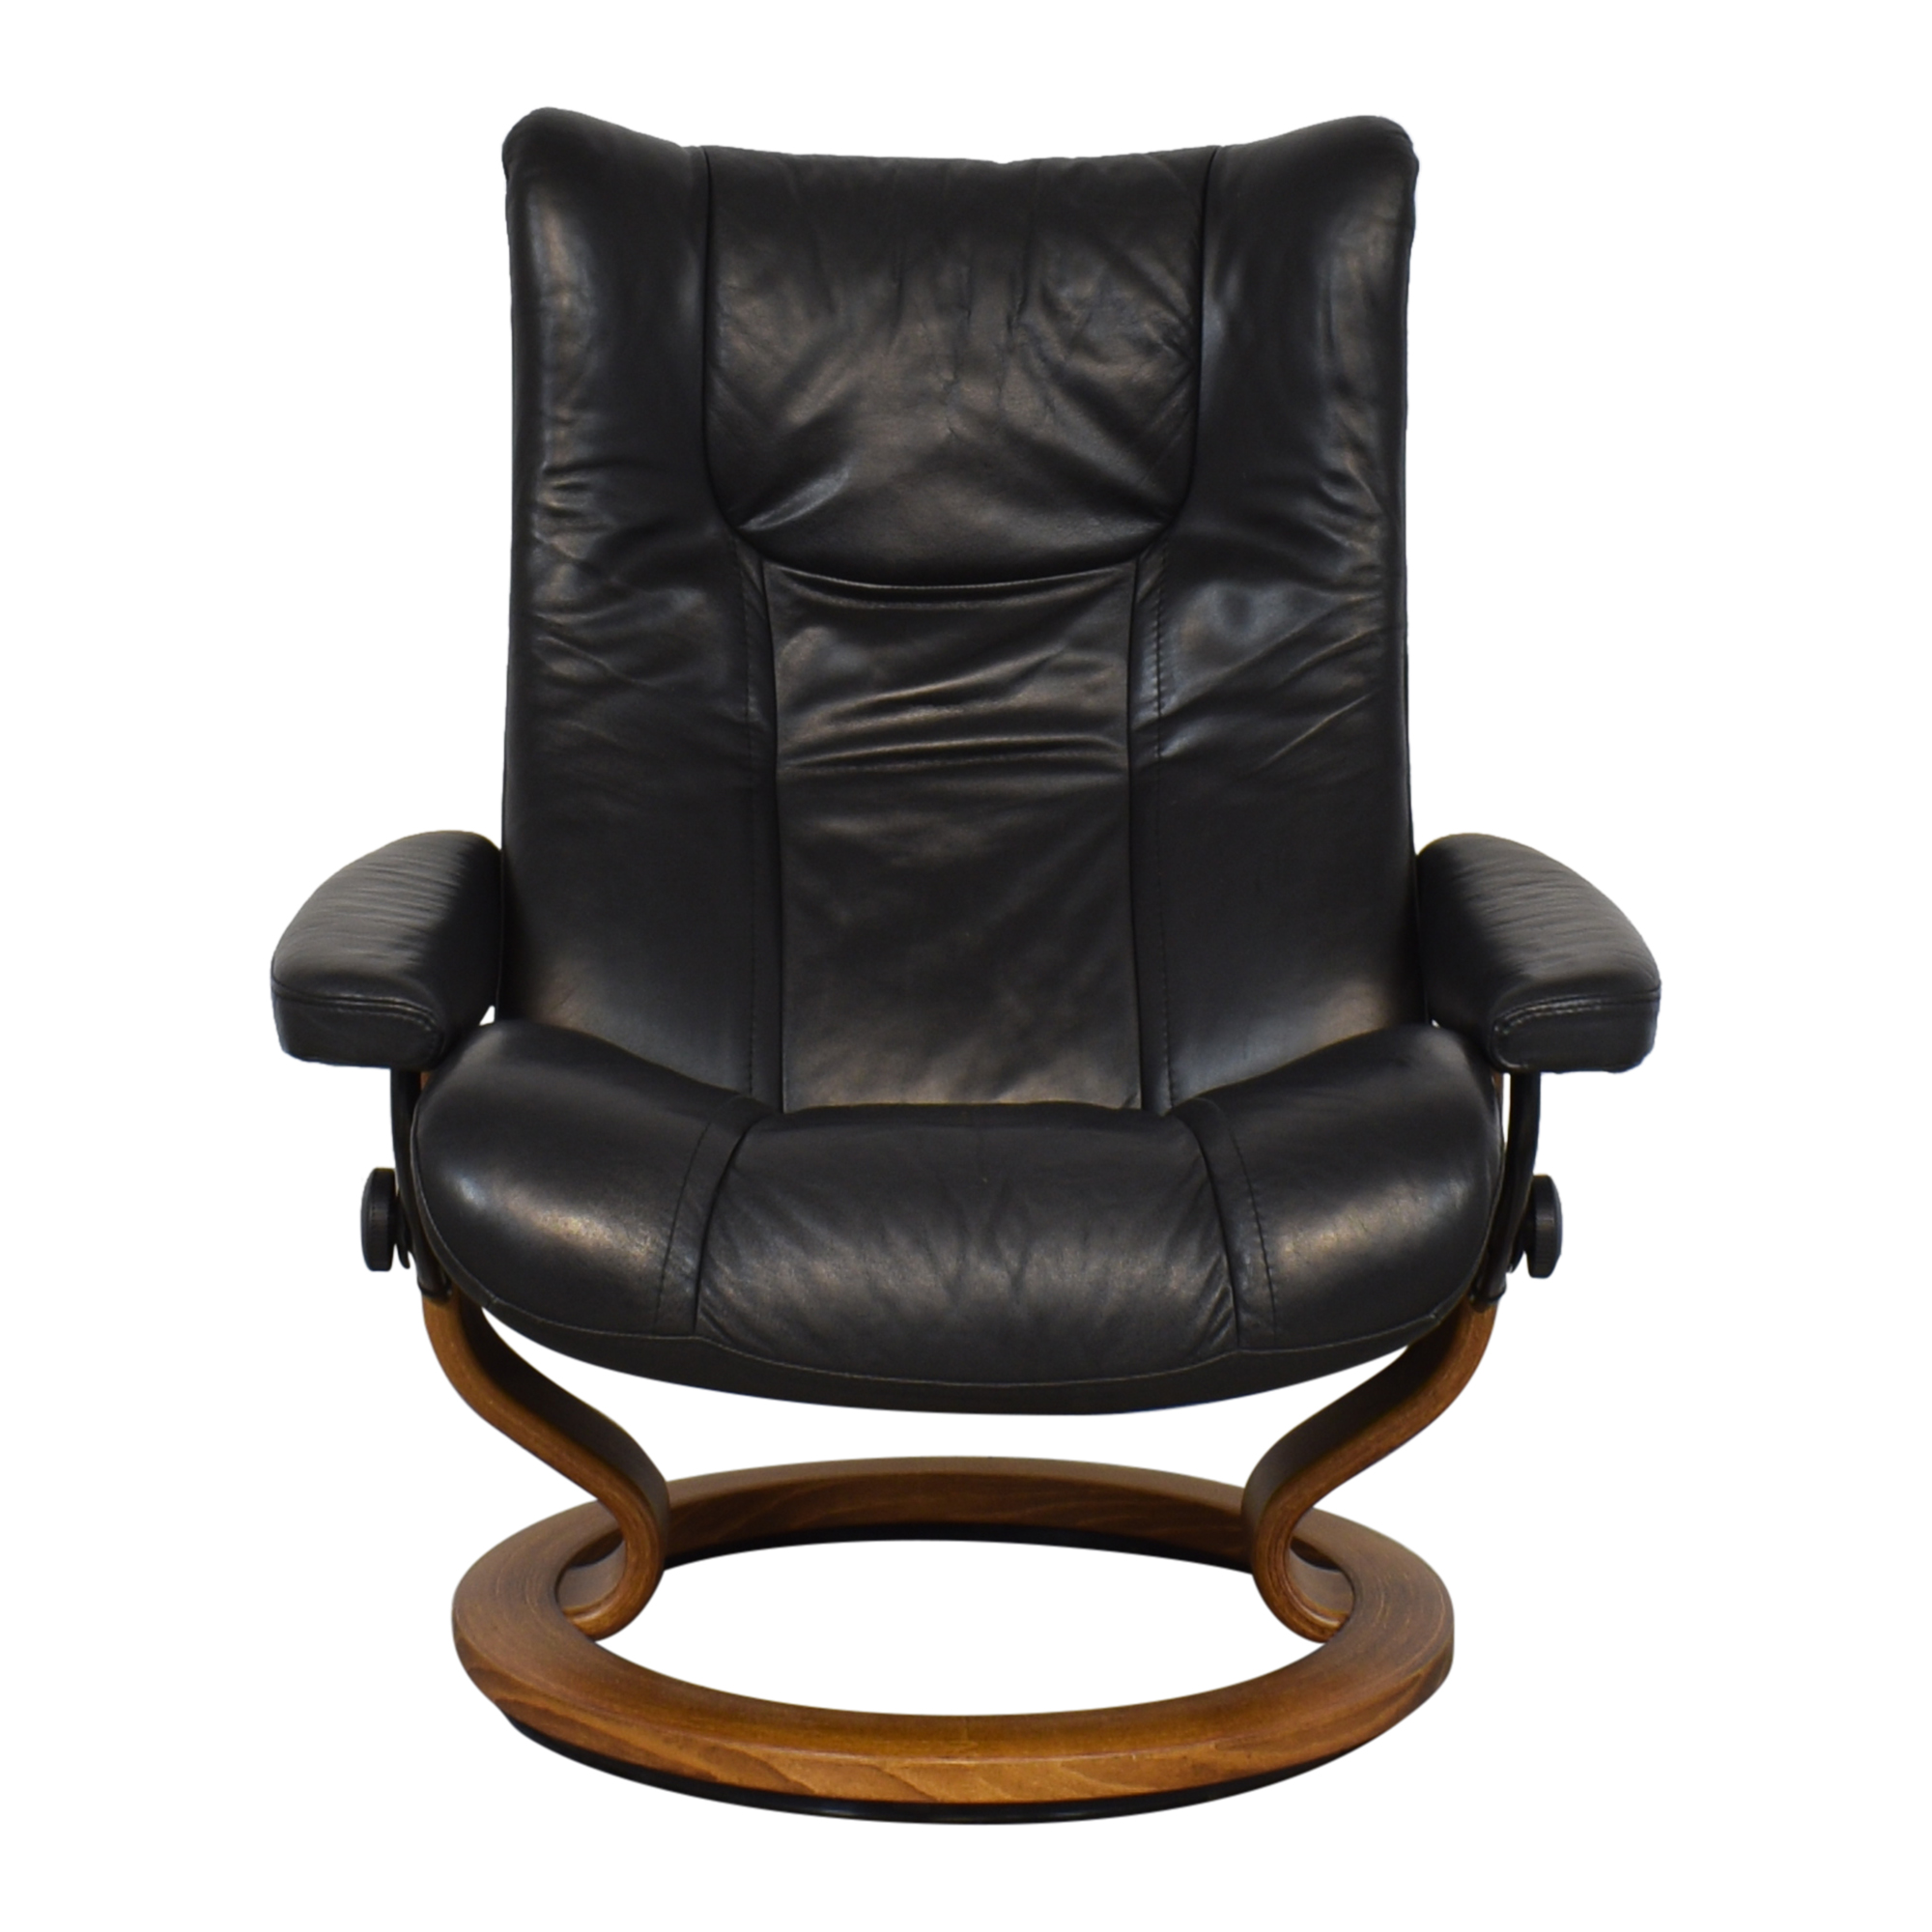 buy Ekornes Ekornes Stressless Chair with Ottoman online